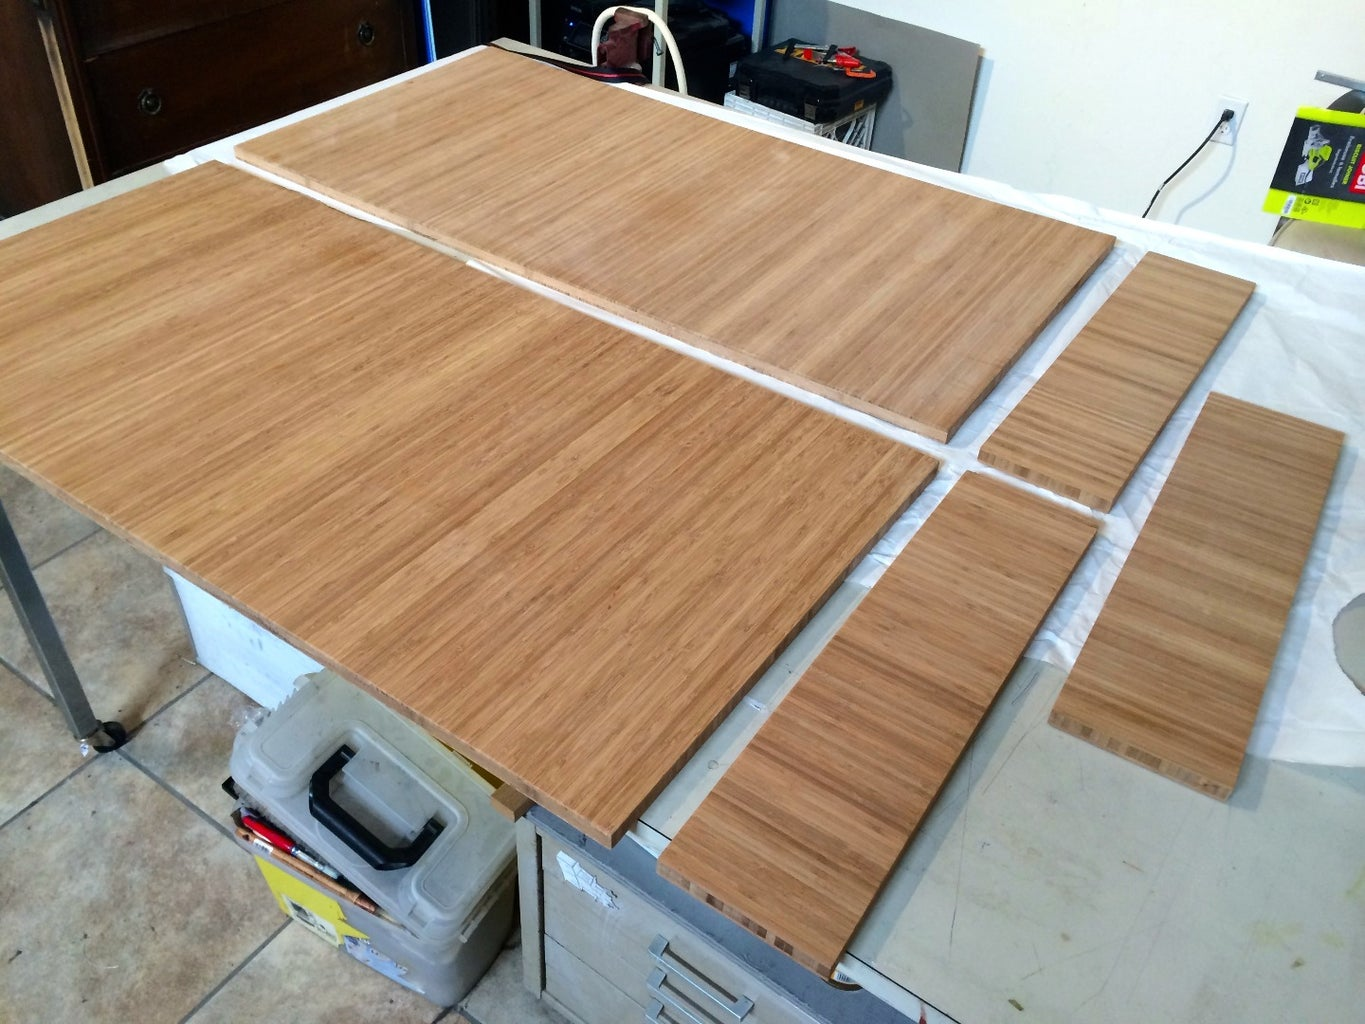 Cut Plyboo to Size on Table Saw